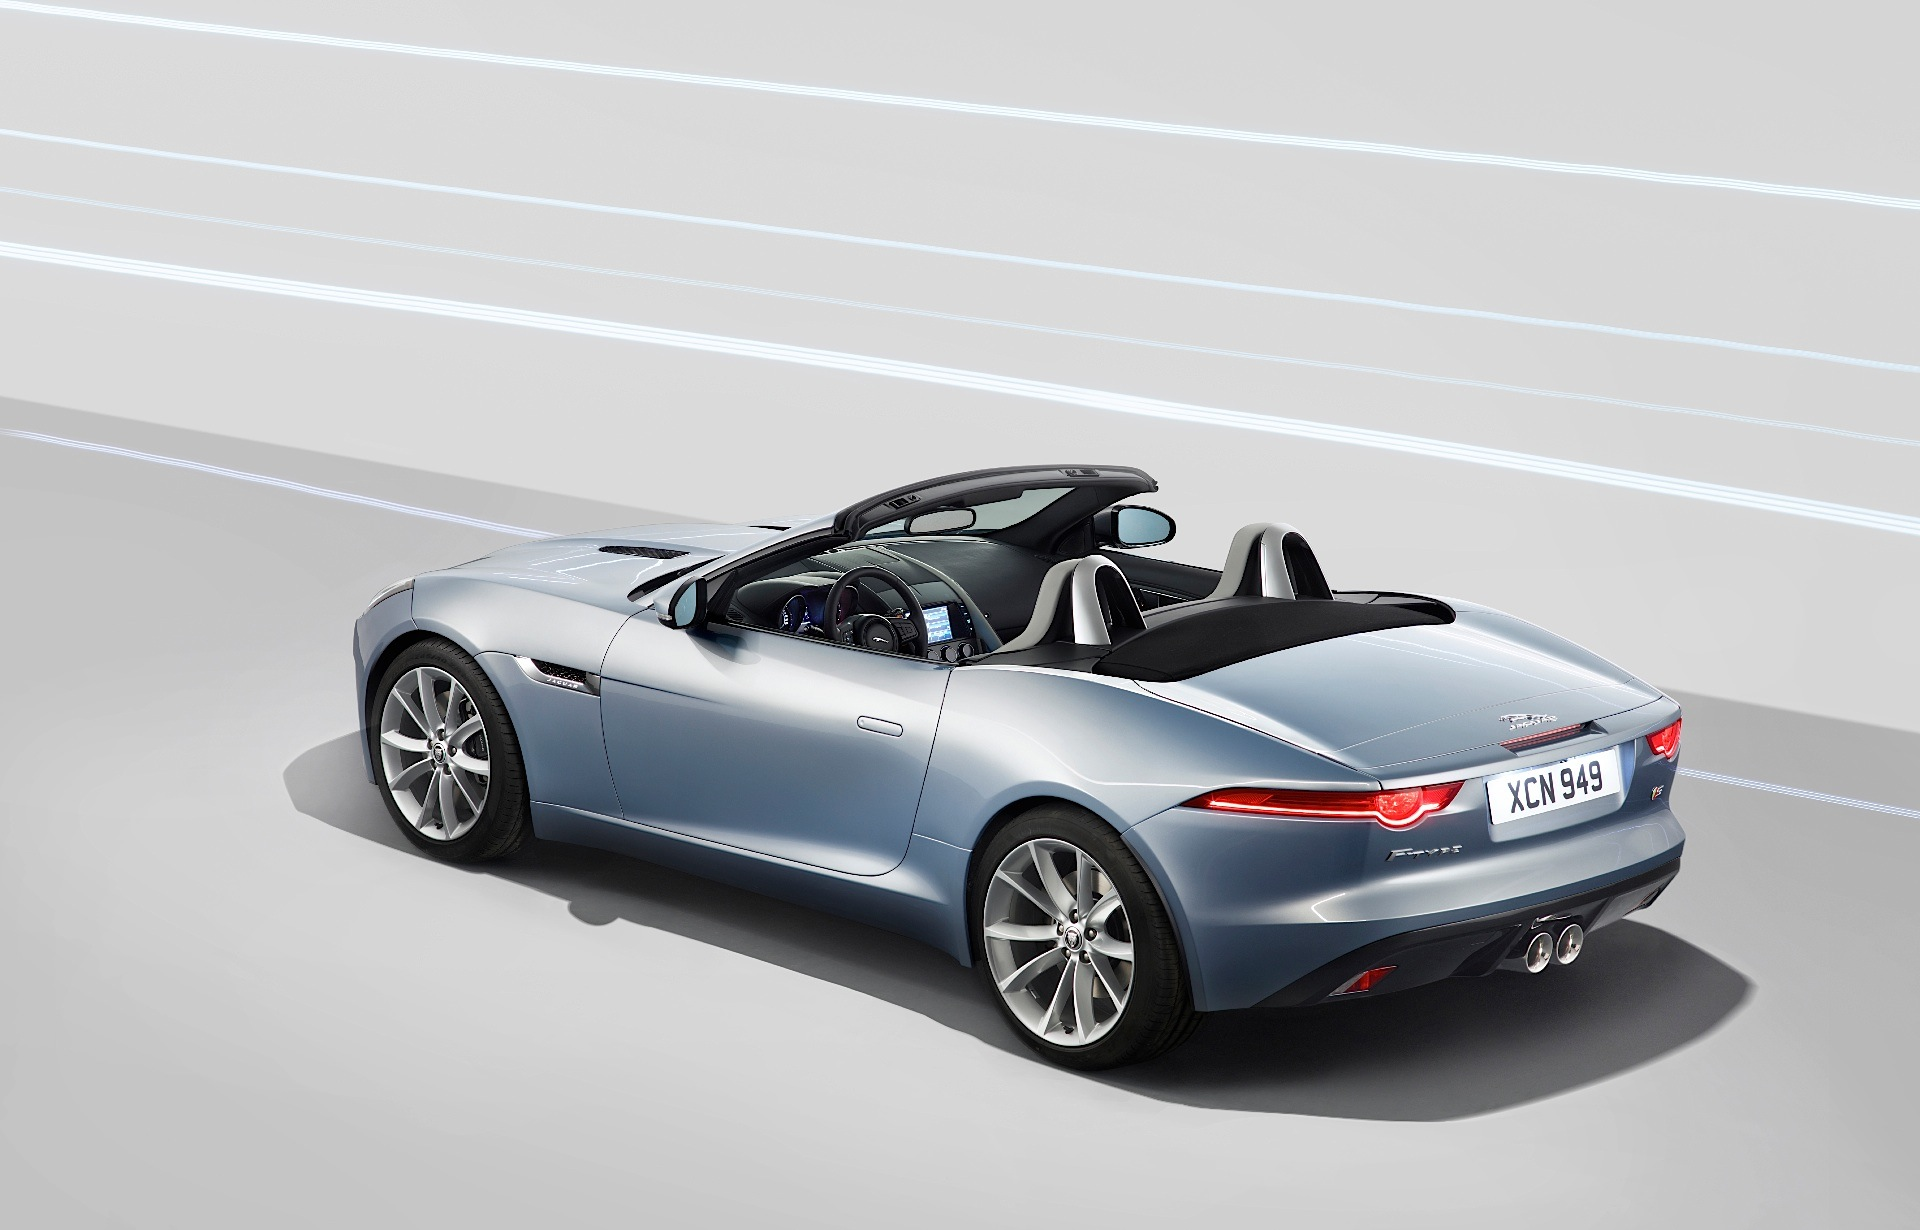 jaguar f type specs 2012 2013 2014 2015 2016 2017 autoevolution. Black Bedroom Furniture Sets. Home Design Ideas